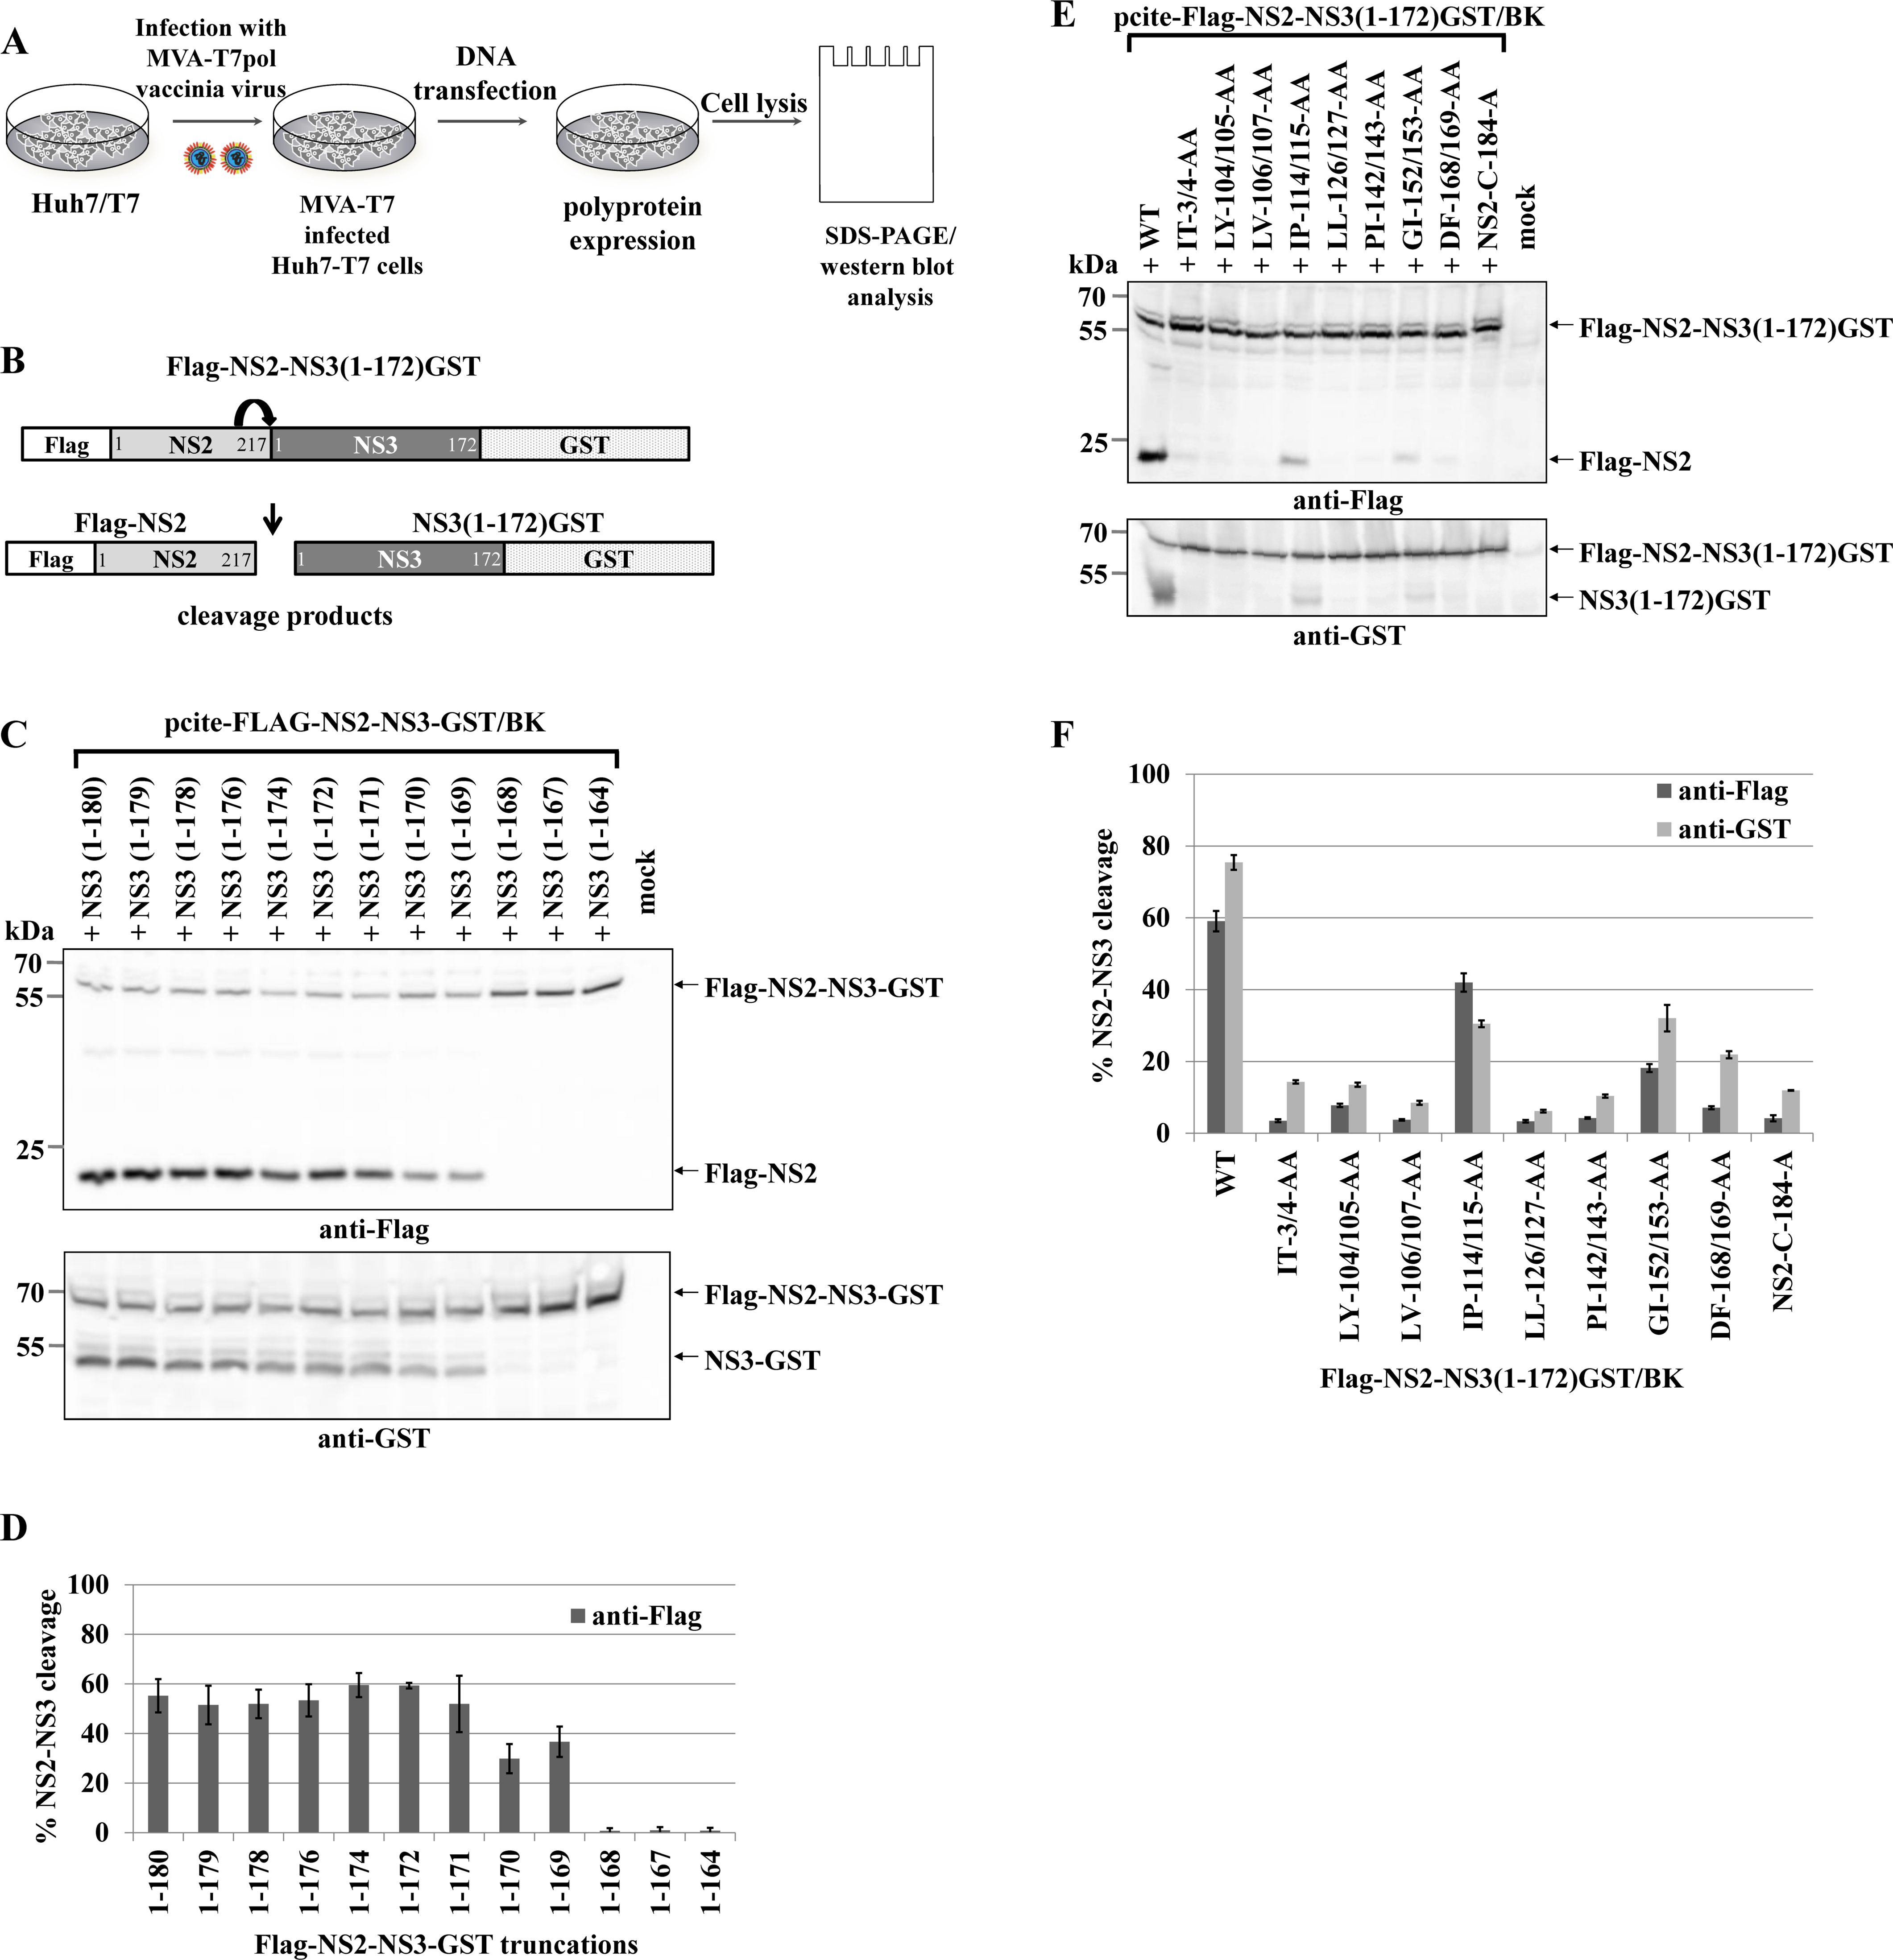 Di-alanine scanning mutagenesis of the NS3 protease domain identified amino acids important for the NS2-protease activation by NS3.